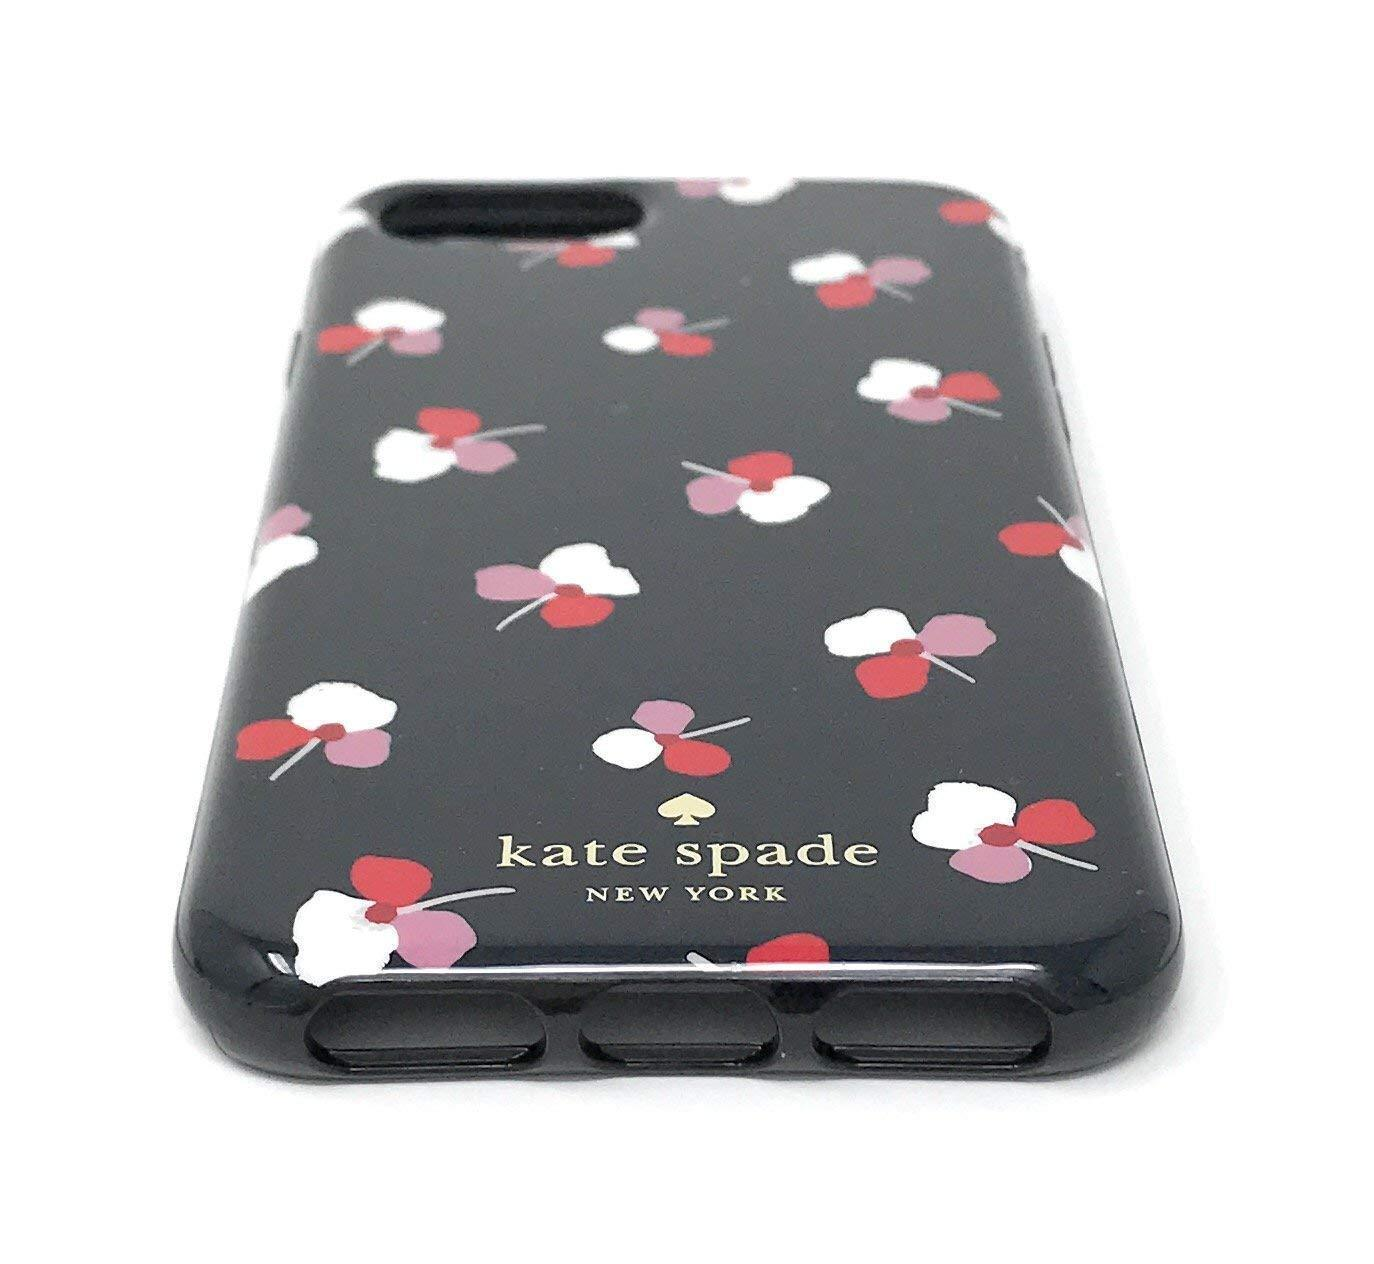 Kate Spade New York Case for iPhone 8 /7/6/6s PLUS Lucky Pansies